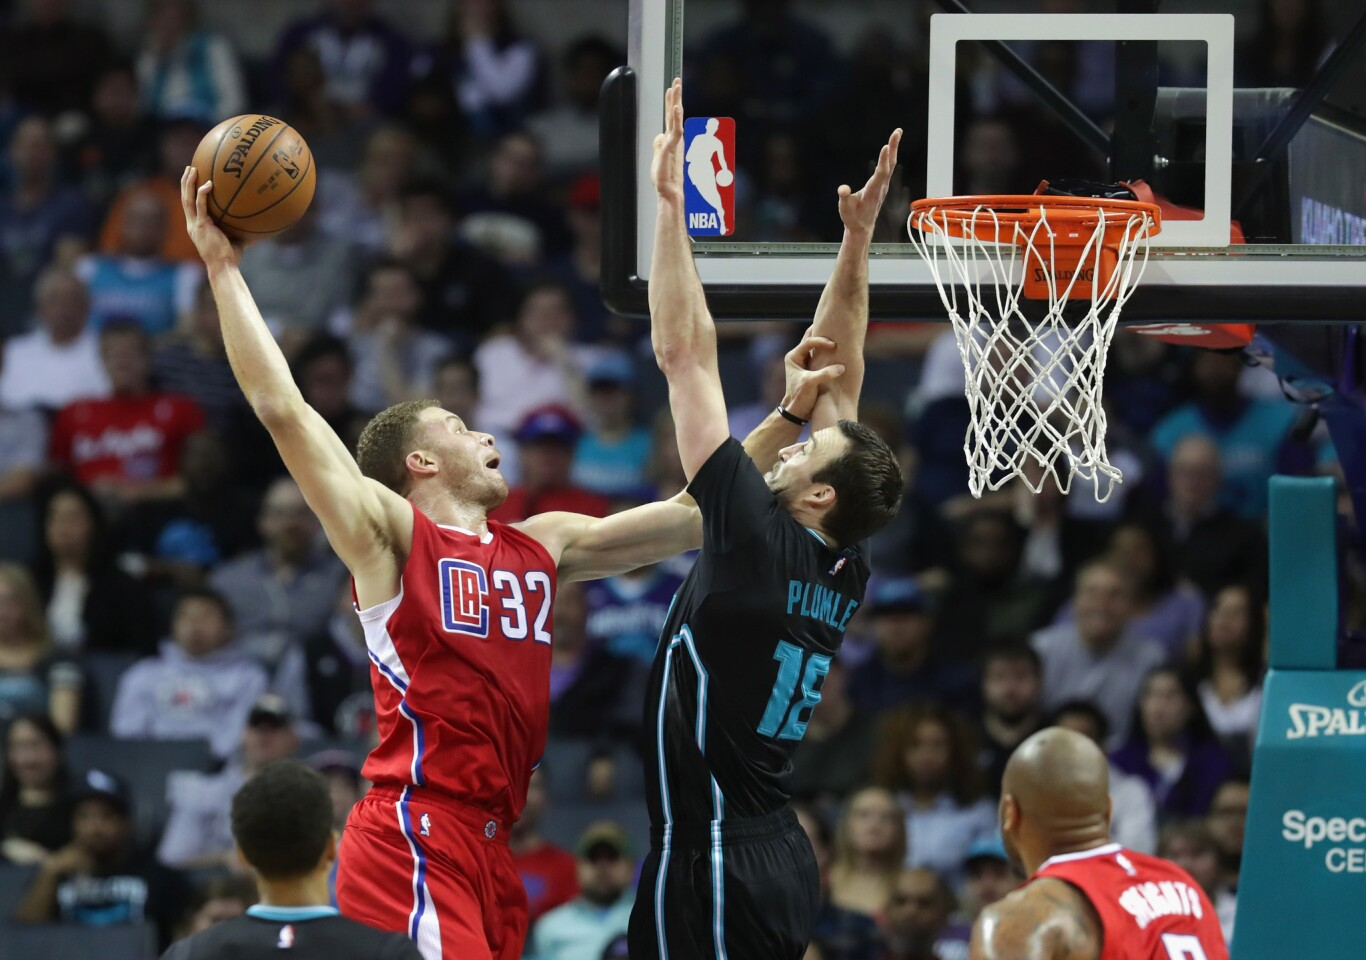 Clippers forward Blake Griffin dunks the ball over Hornets center Miles Plumlee during a game on Feb. 11.